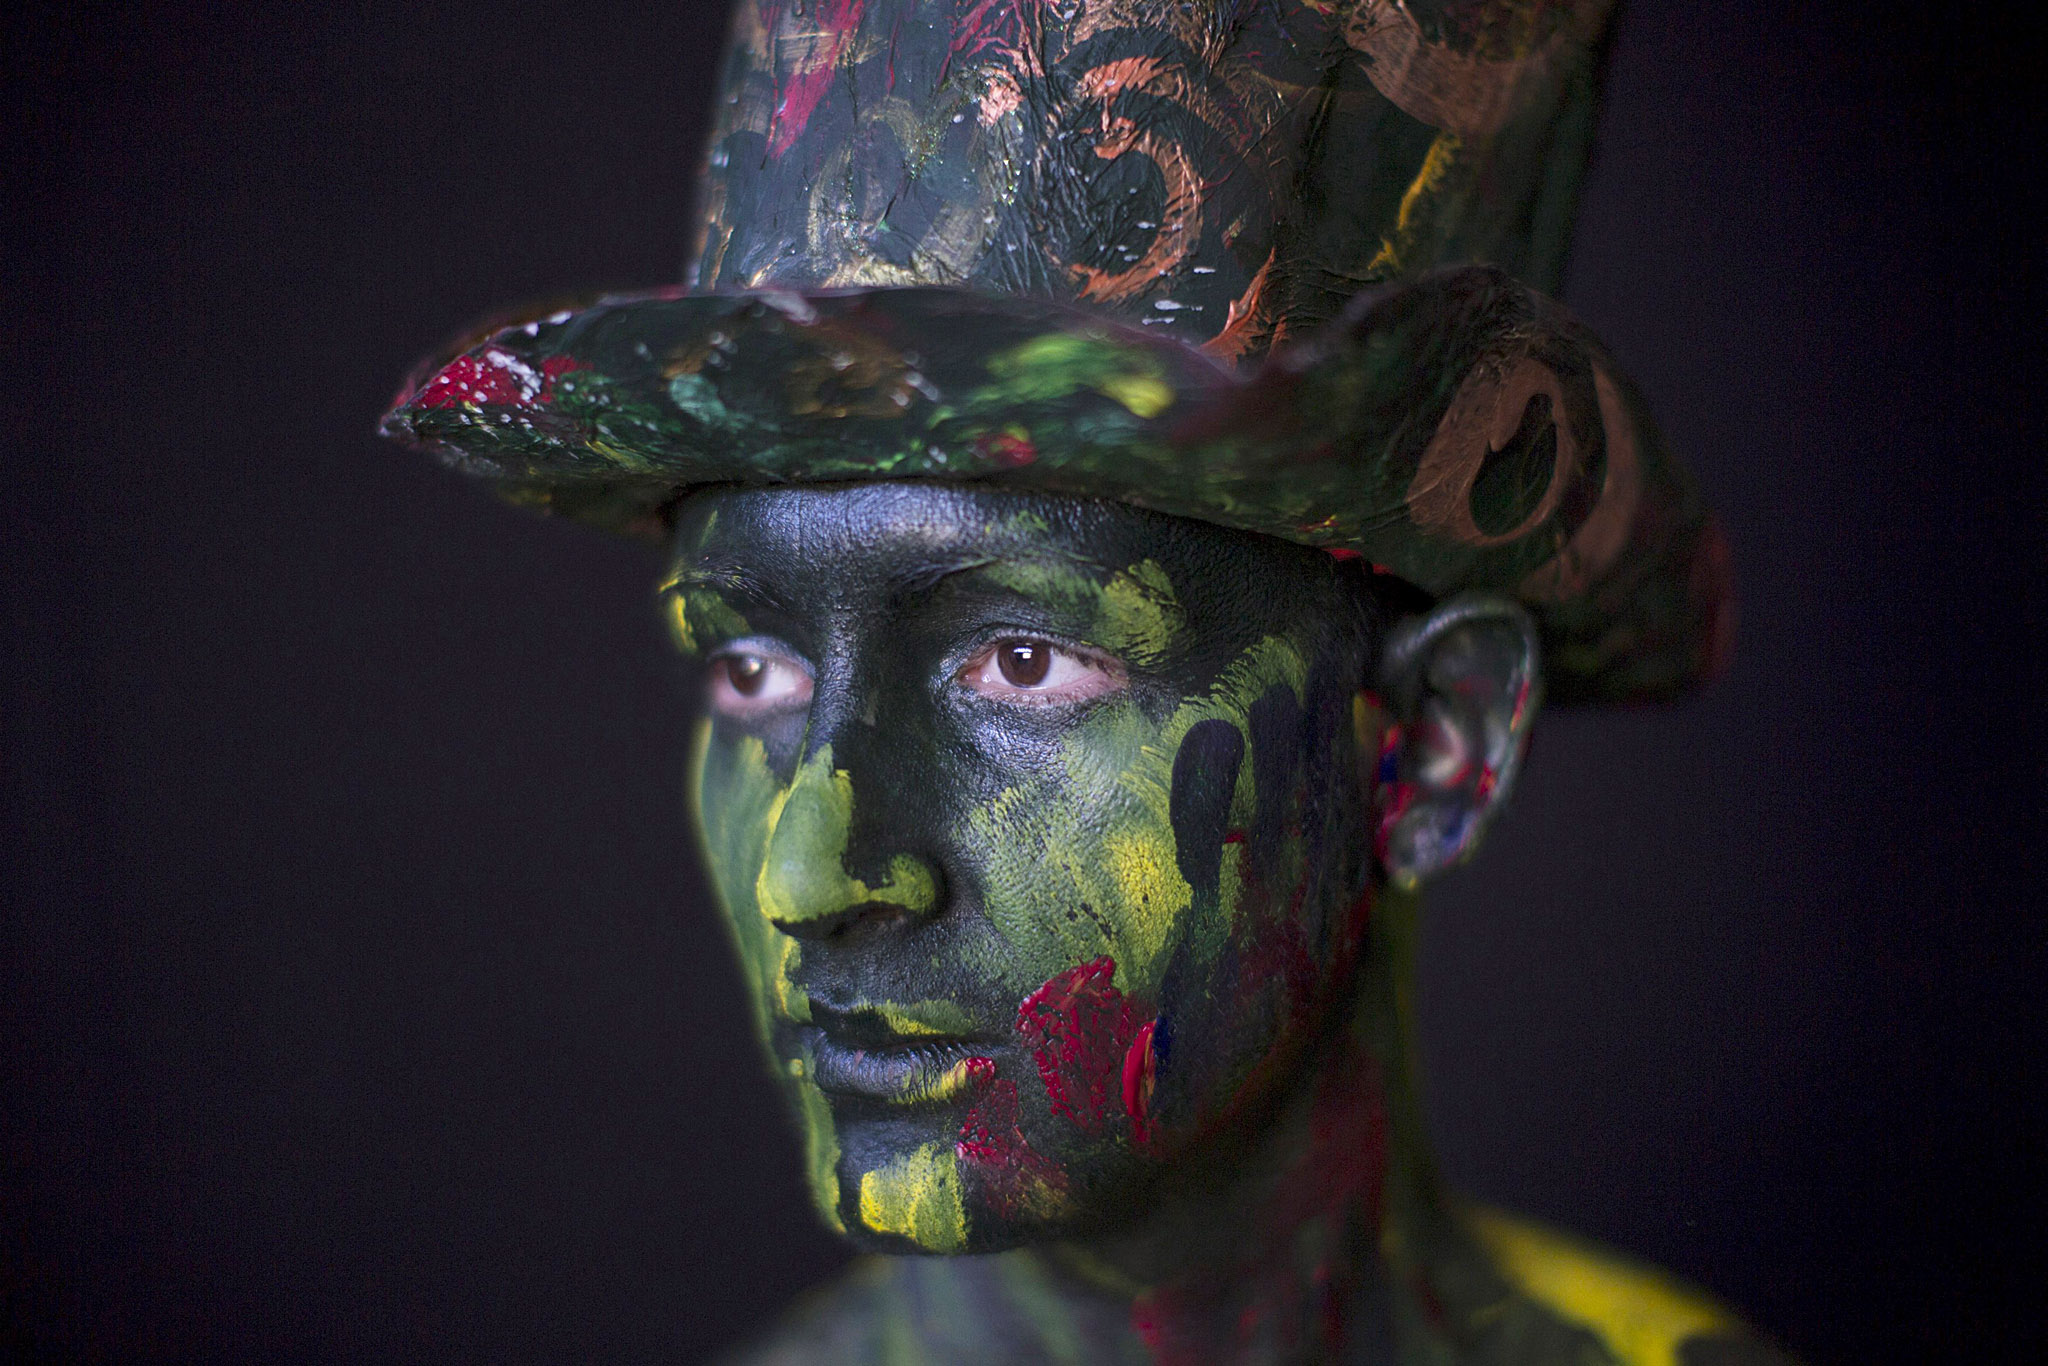 "Actor Orlando Silva, 25, poses for a photo as he has his body painted to perform as part of the creation ""Mutacion Forzada"", or Forced Mutation, by Cuban artist Alberto Lescay during the 12th Havana Biennial, in Havana...Actor Orlando Silva, 25, poses for a photo as he has his body painted to perform as part of the creation ""Mutacion Forzada"", or Forced Mutation, by Cuban artist Alberto Lescay during the 12th Havana Biennial, in Havana, May 31, 2015. REUTERS/Alexandre Meneghini"